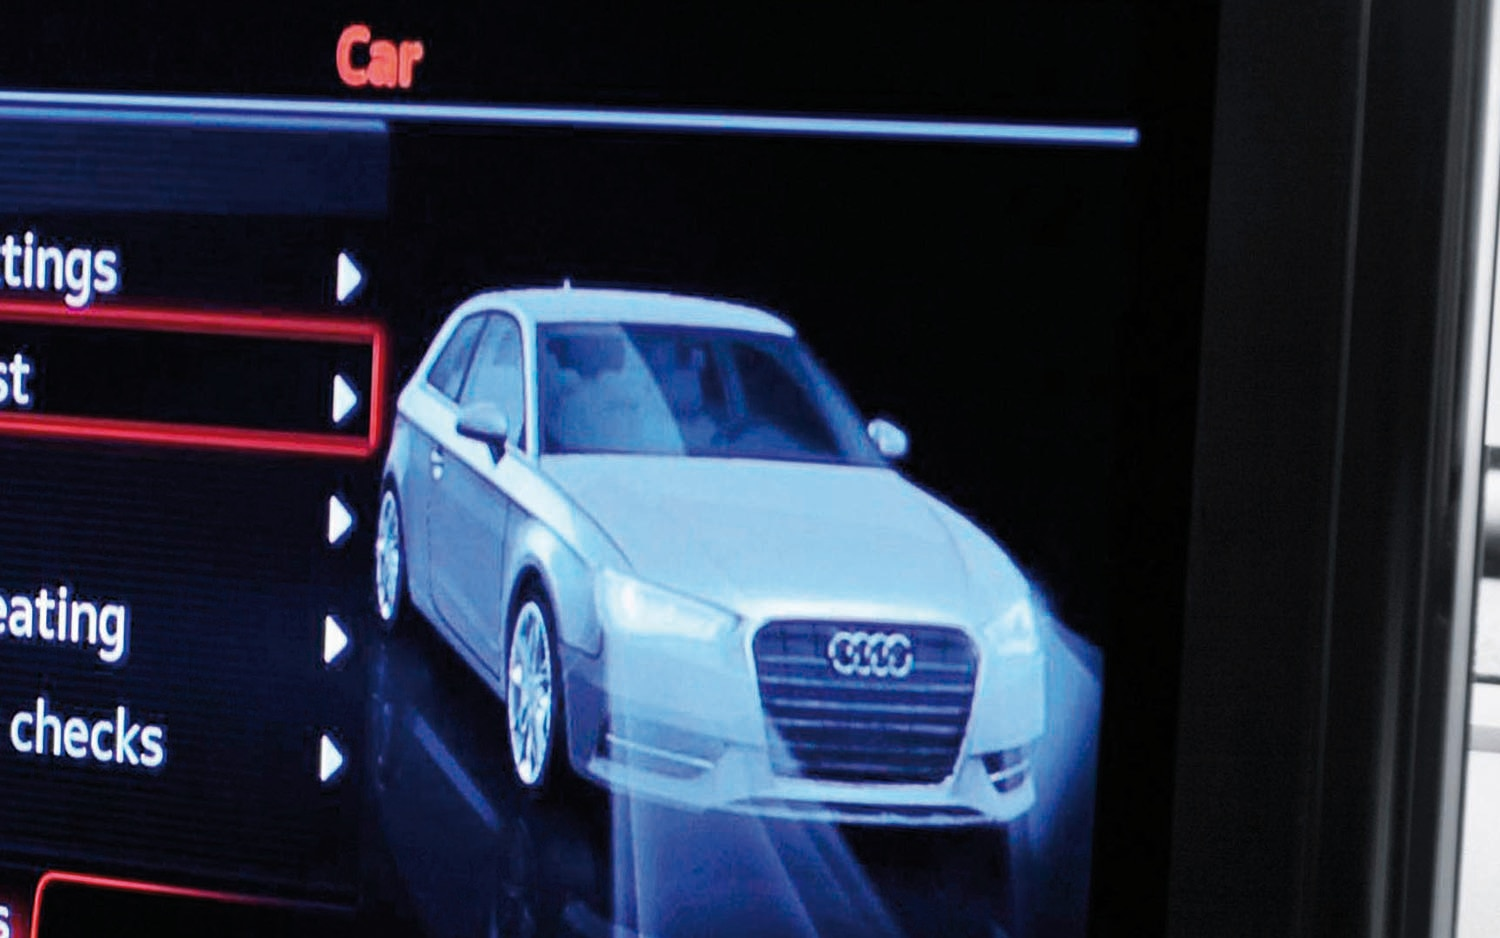 2013 Audi A3 Exterior Rendering MMI Screen1